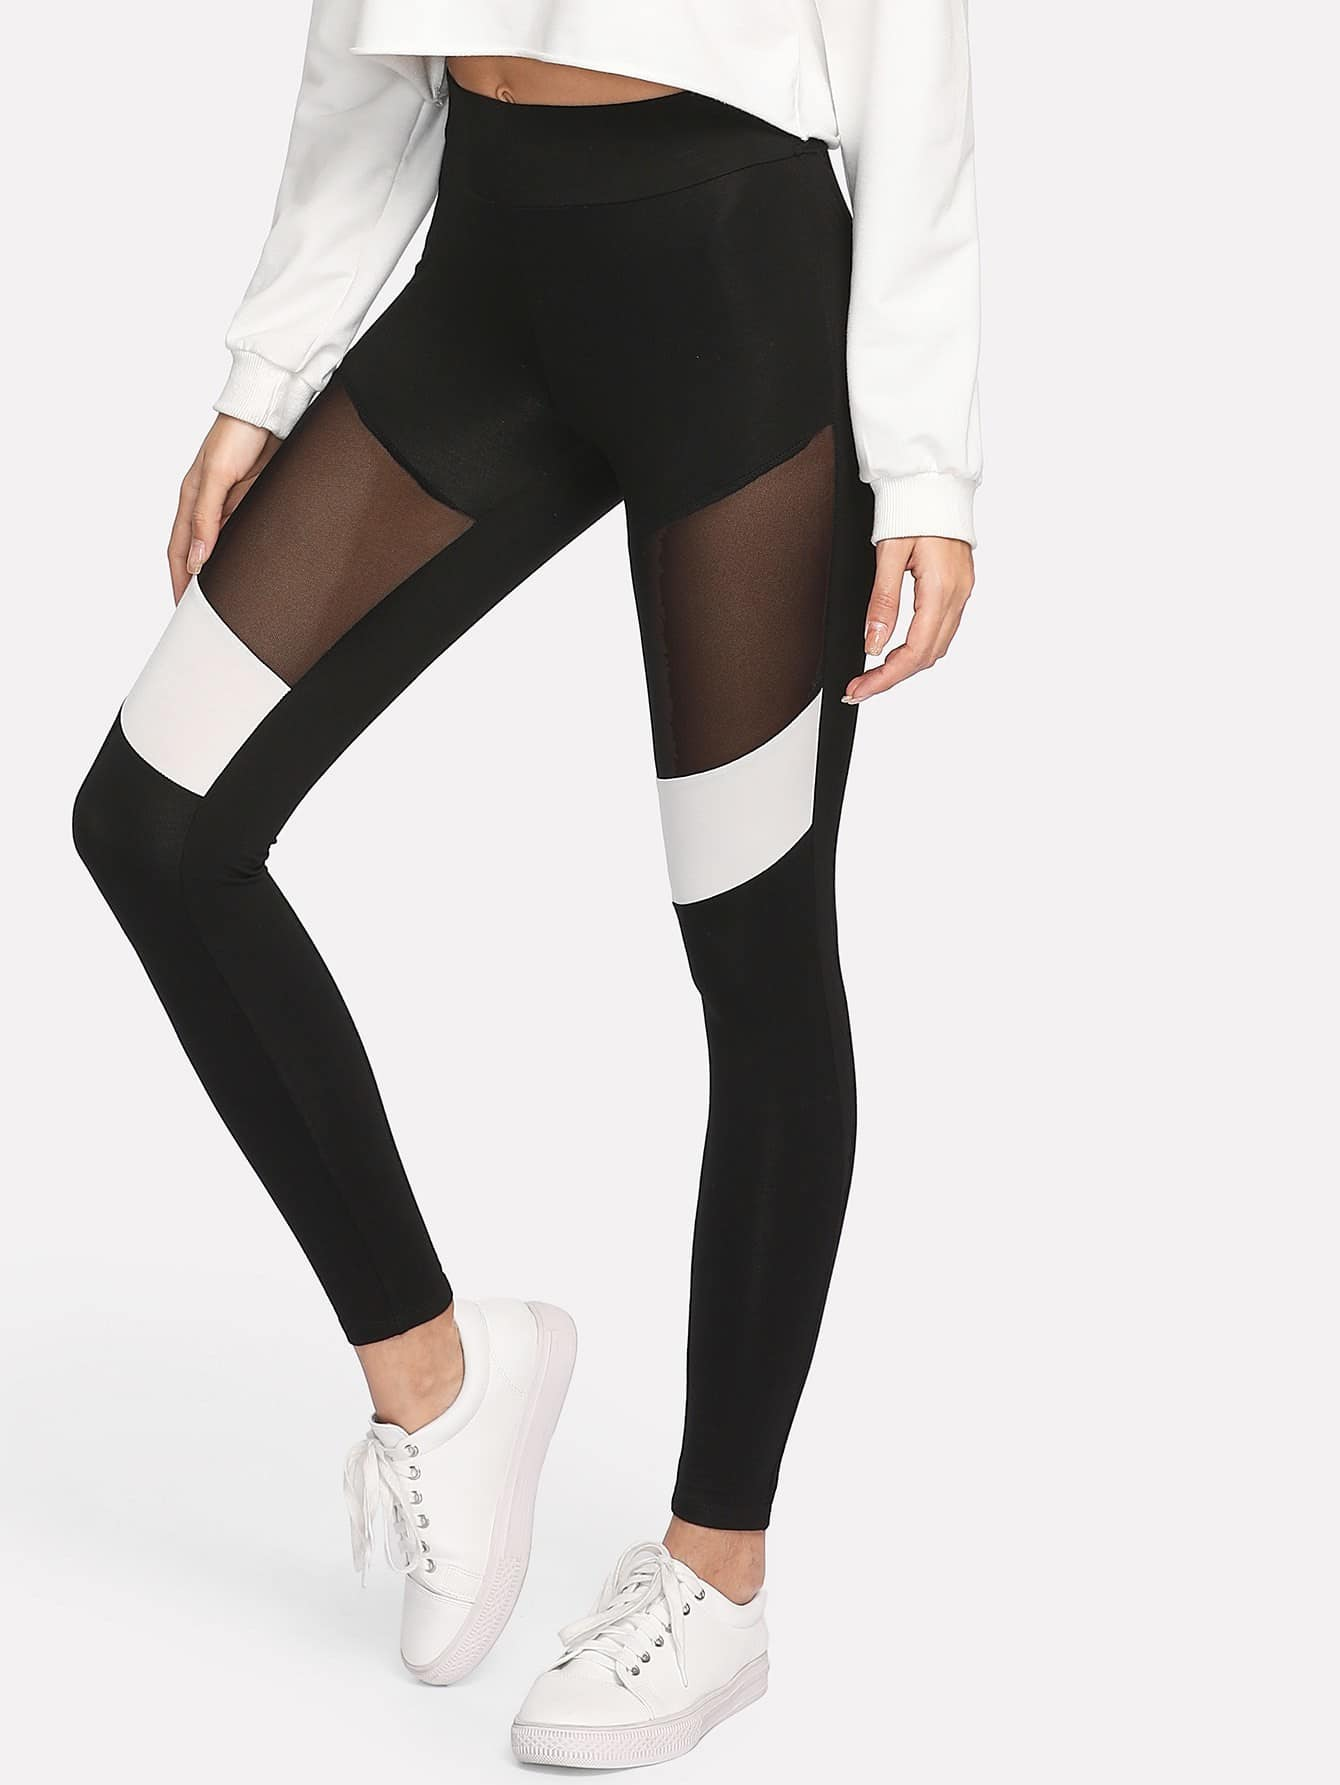 Two Tone Mesh Insert Leggings крючок двойной ellux avantgarde ava 001